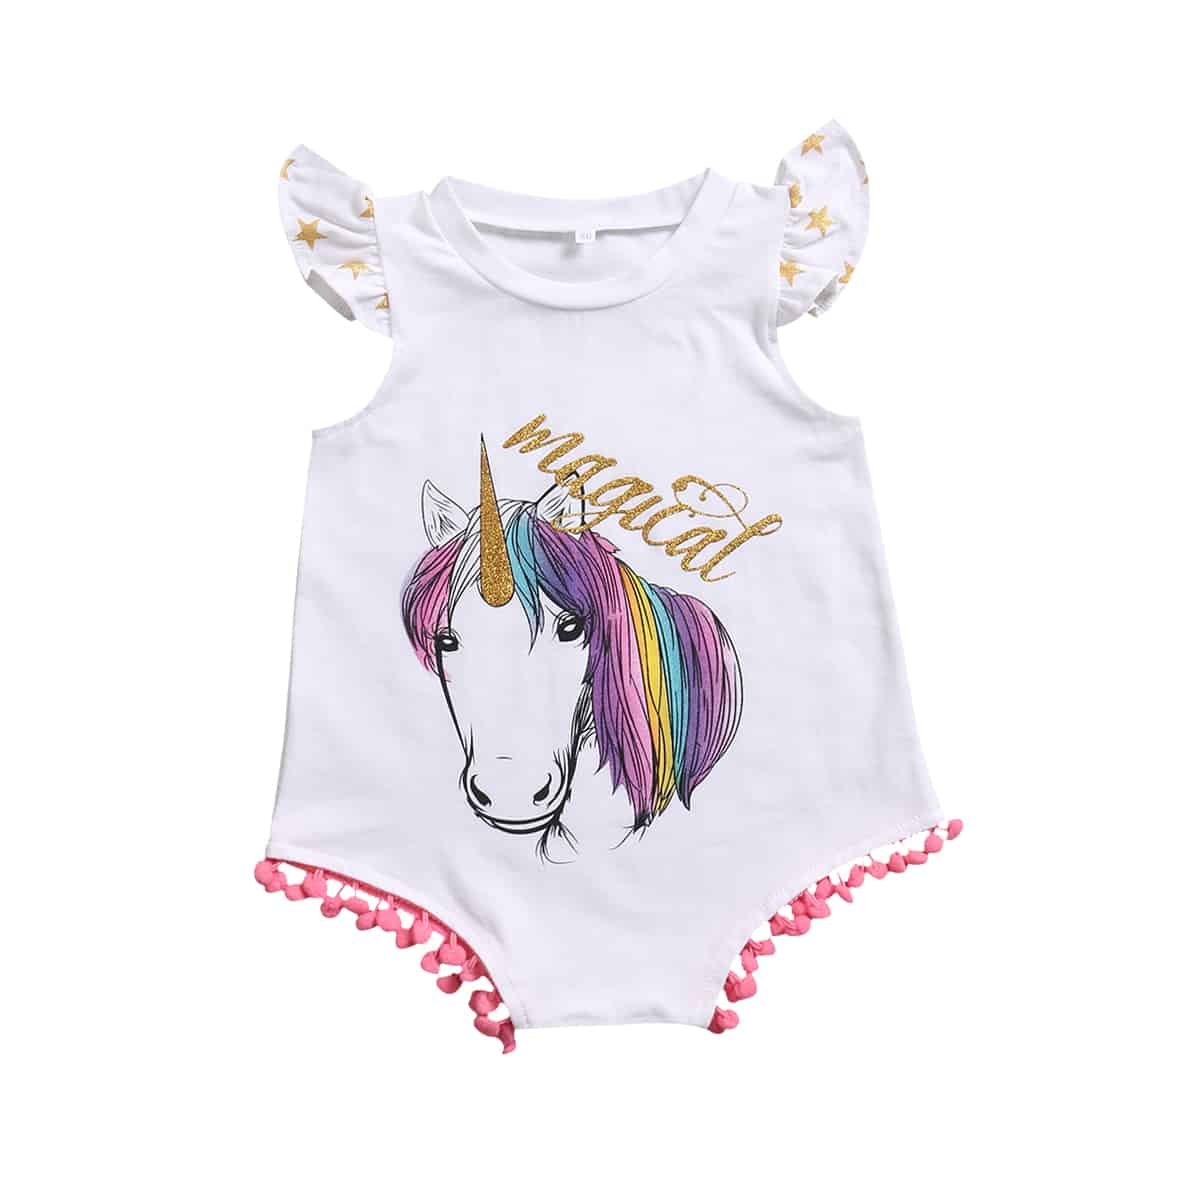 de6e3a0d0 Unicorn sibling sister set tank top and onesie romper | Gullywubbles